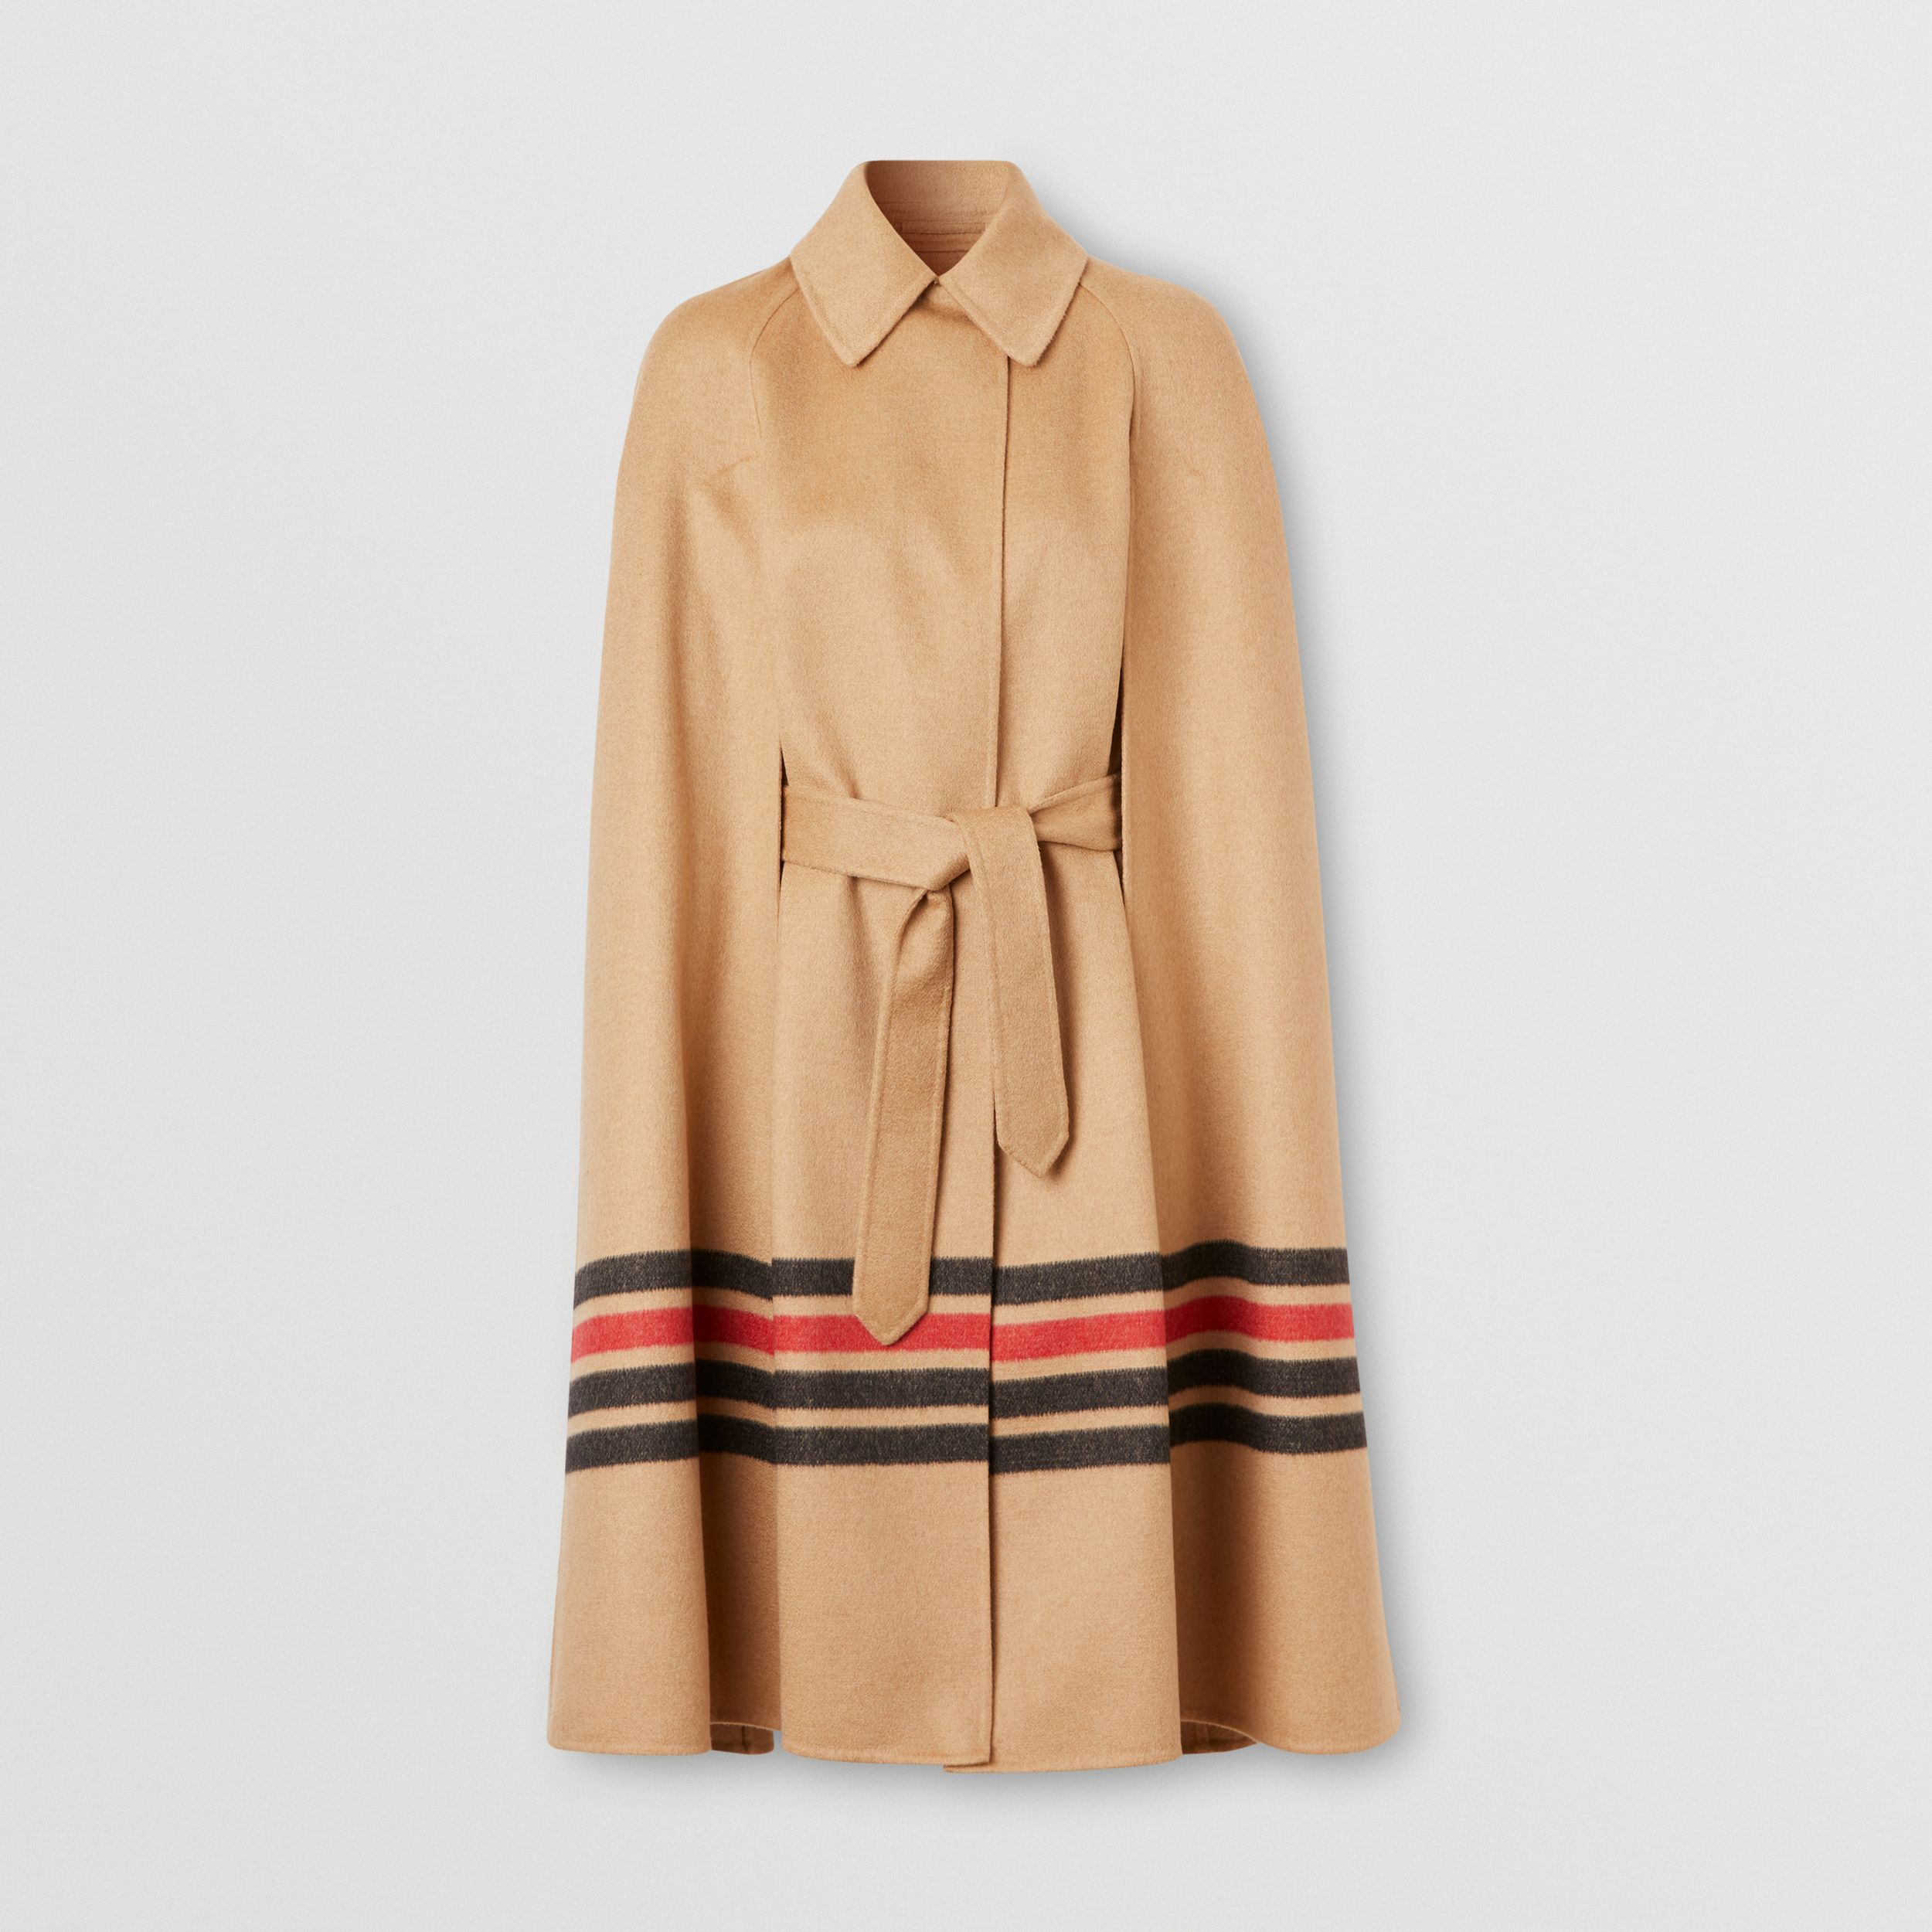 Stripe Detail Double-faced Cashmere Cape in Light Camel - Women | Burberry - 4